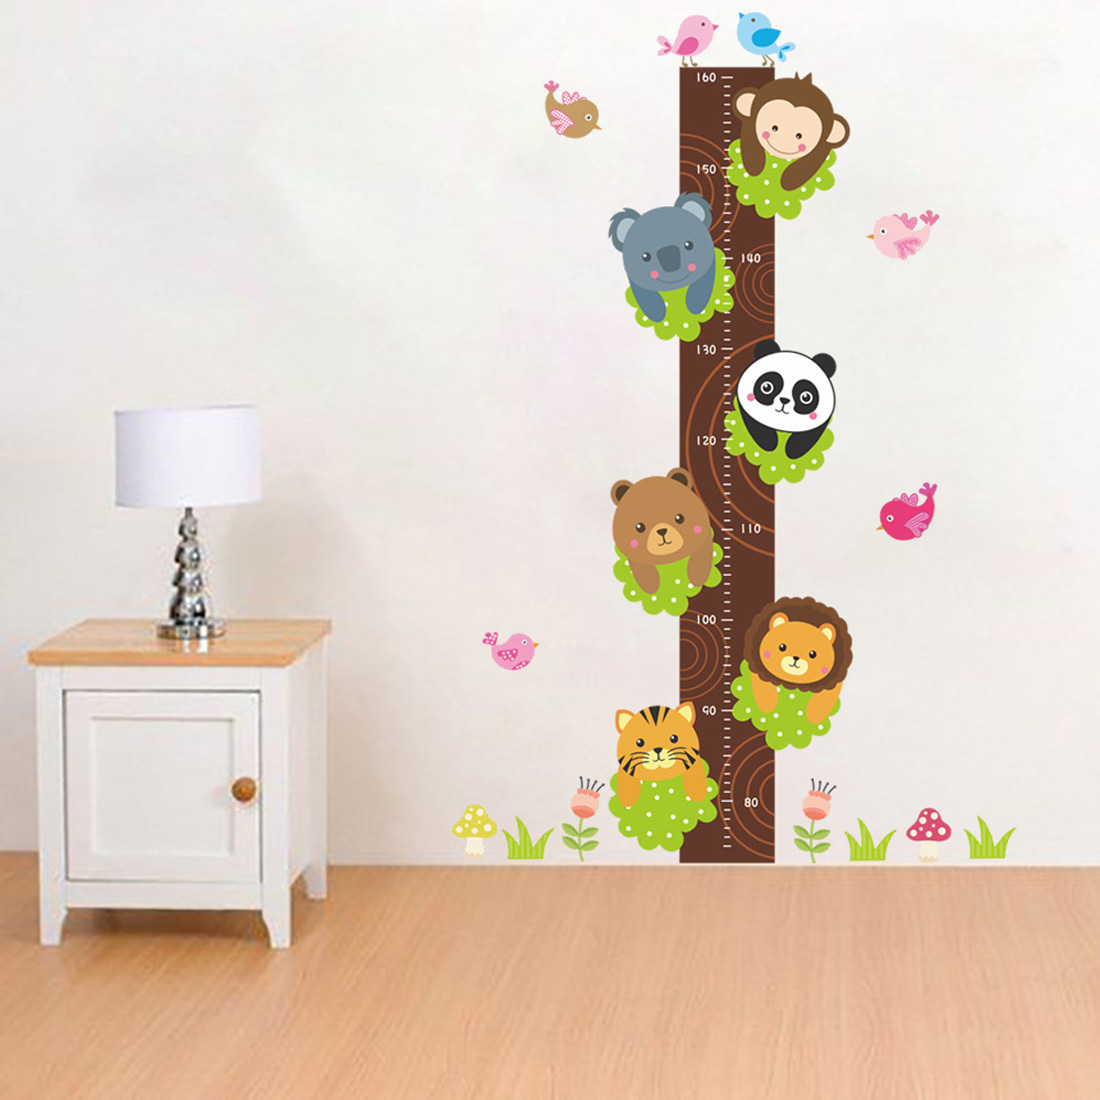 New animals tree growth chart height measure wall decals kids room special note need more wall stickers we will provide more discounts quantity contact us amipublicfo Choice Image